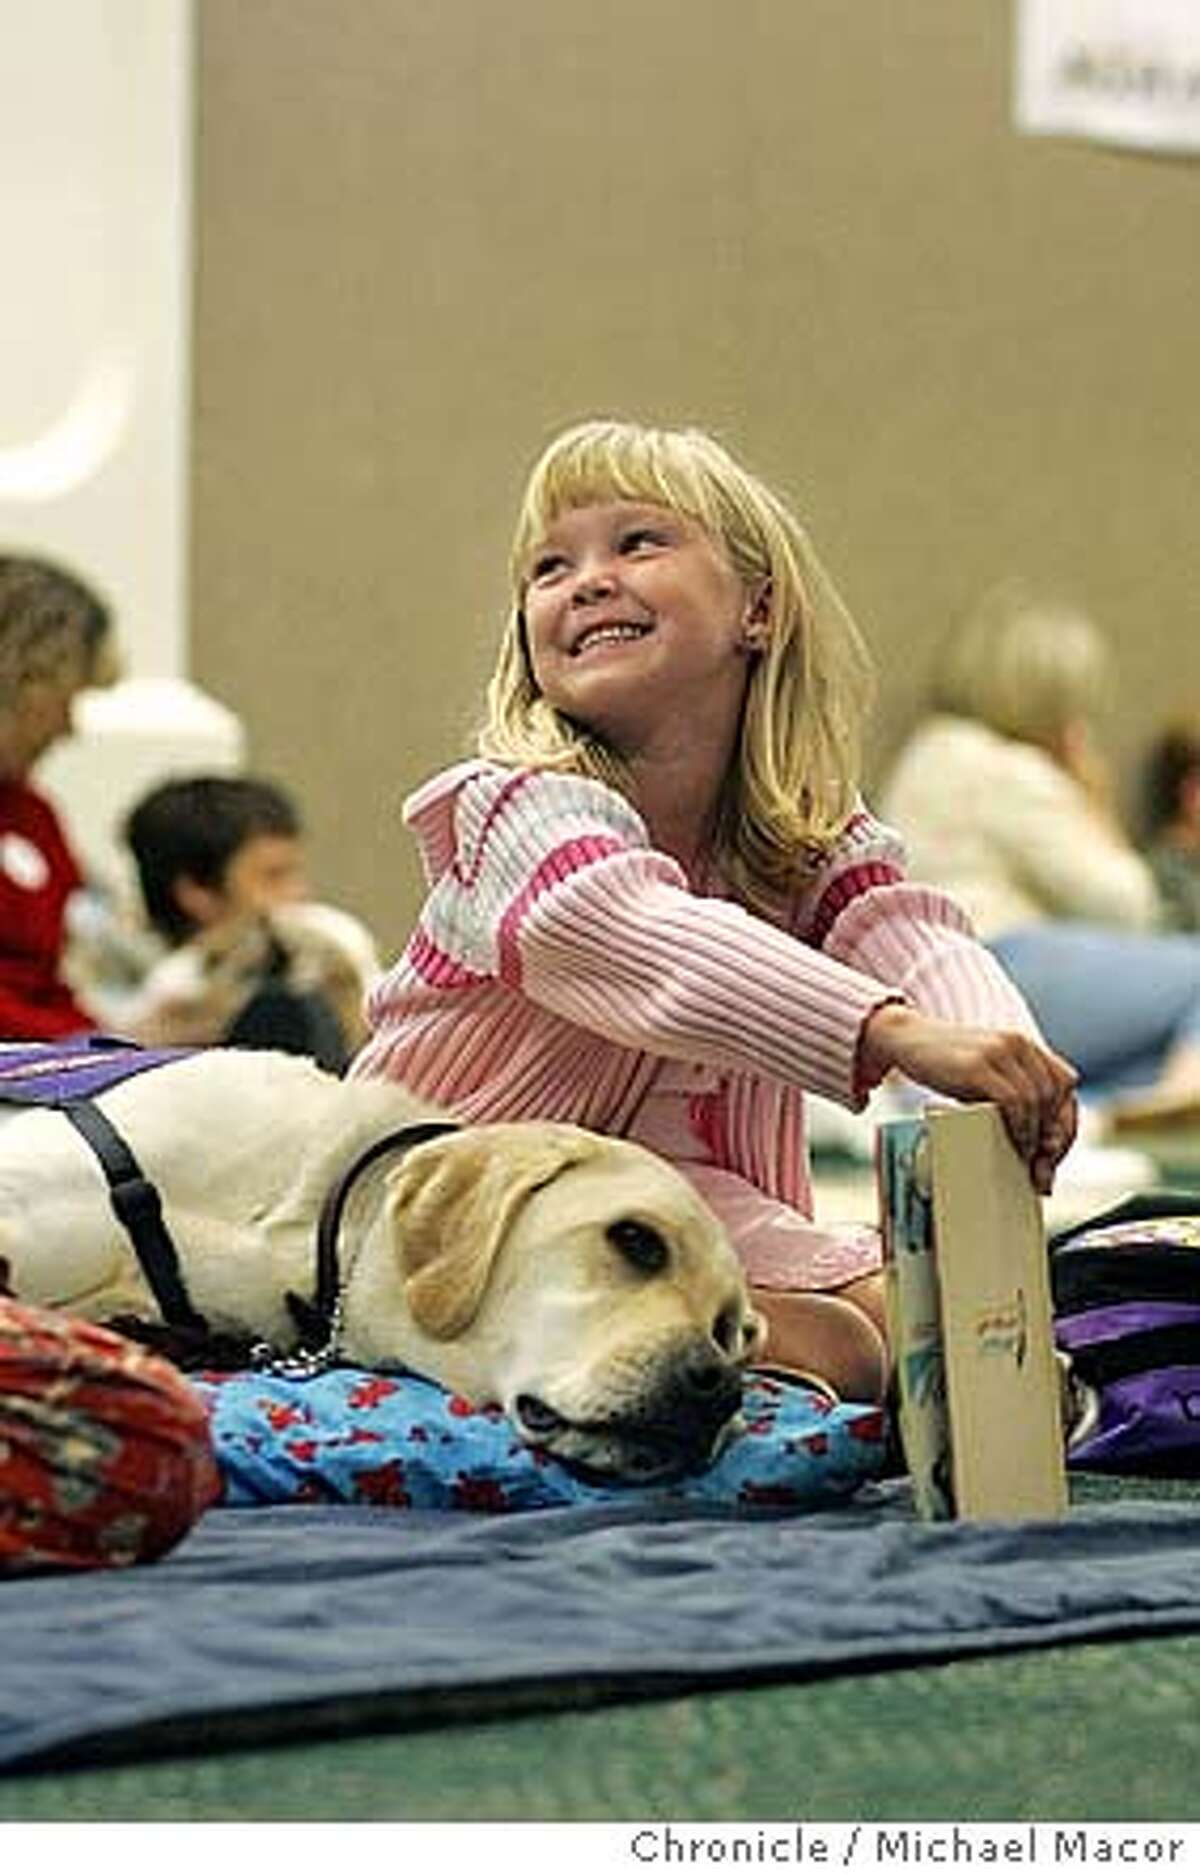 """6 year old Maura Carrick enjoying her time with, """"Ben"""". PAWS to Read program at the Pleasanton Public Library. Children practice their reading skills in a program that matches kids up with dogs from the local animal shelter. 10/5/04 Pleasanton, CA Michael Macor / San Francisco Chronicle"""